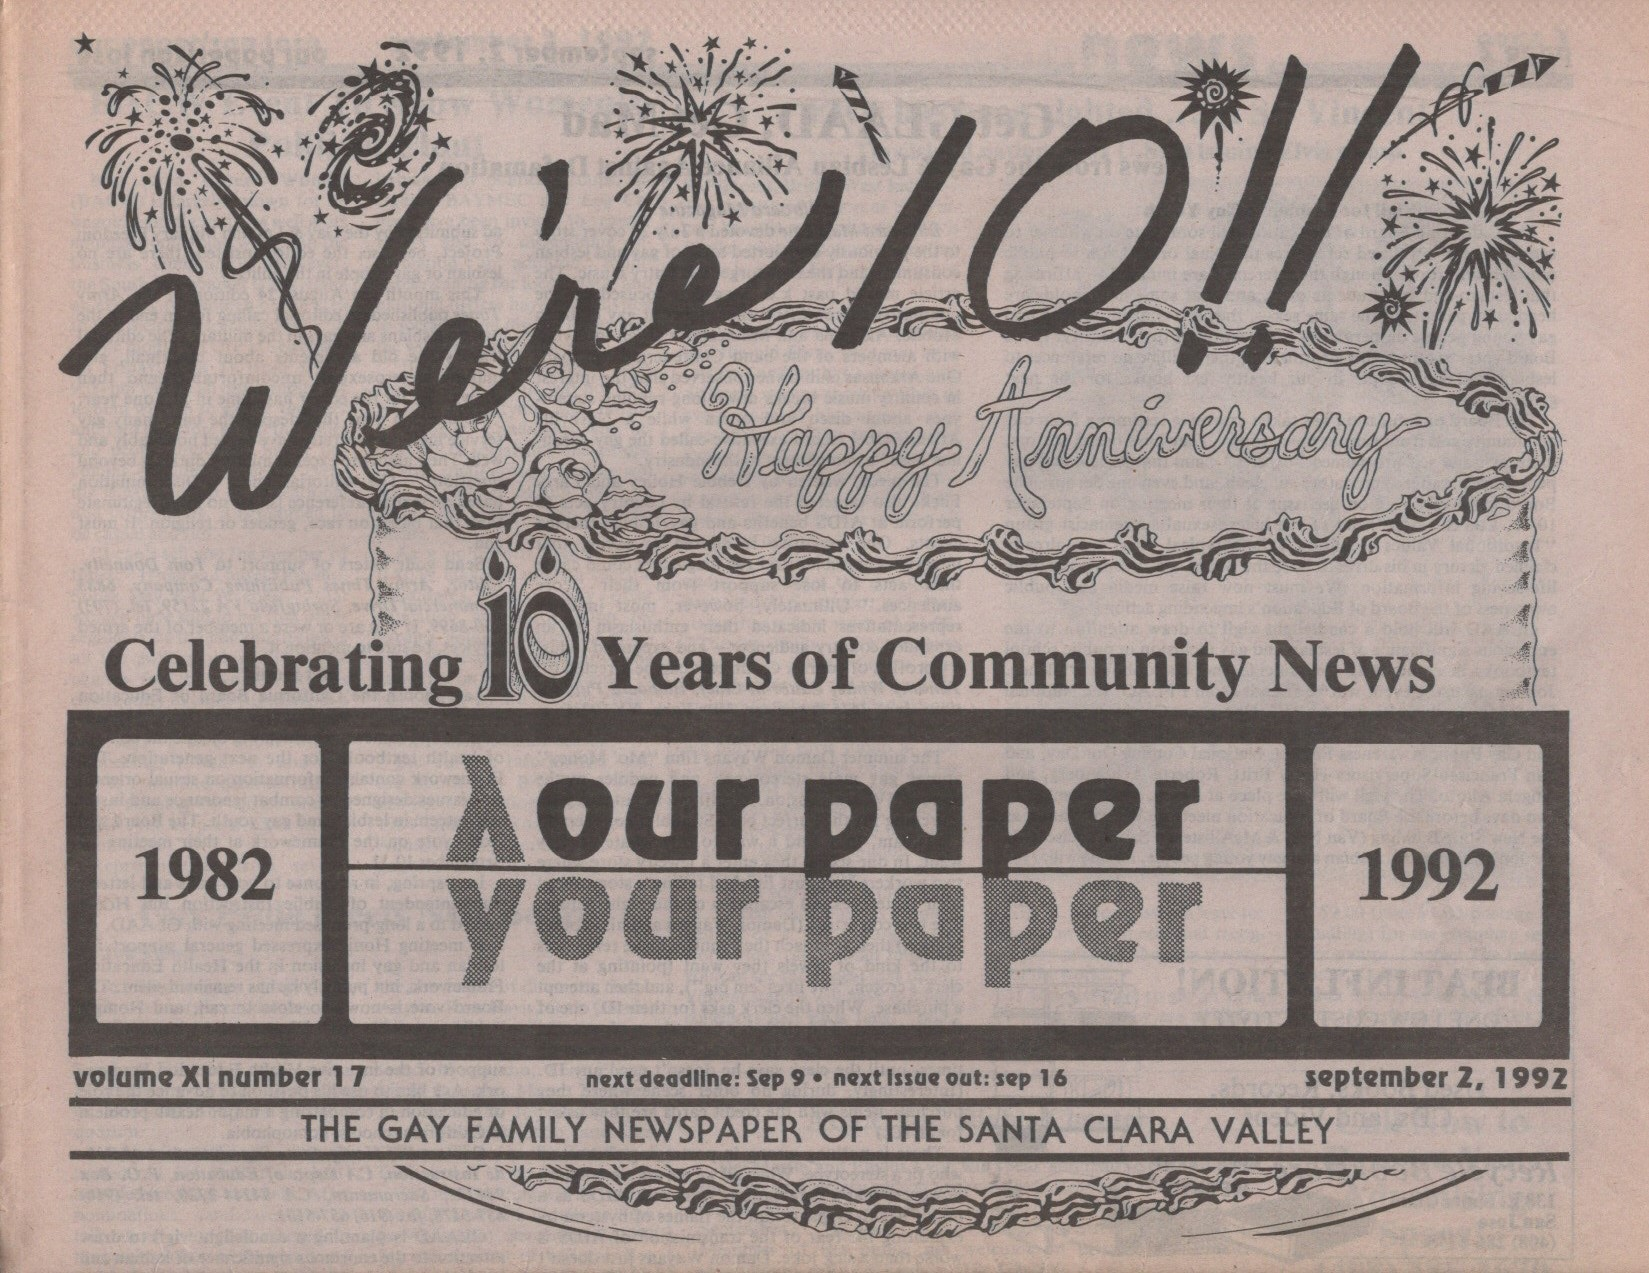 our paper your paper